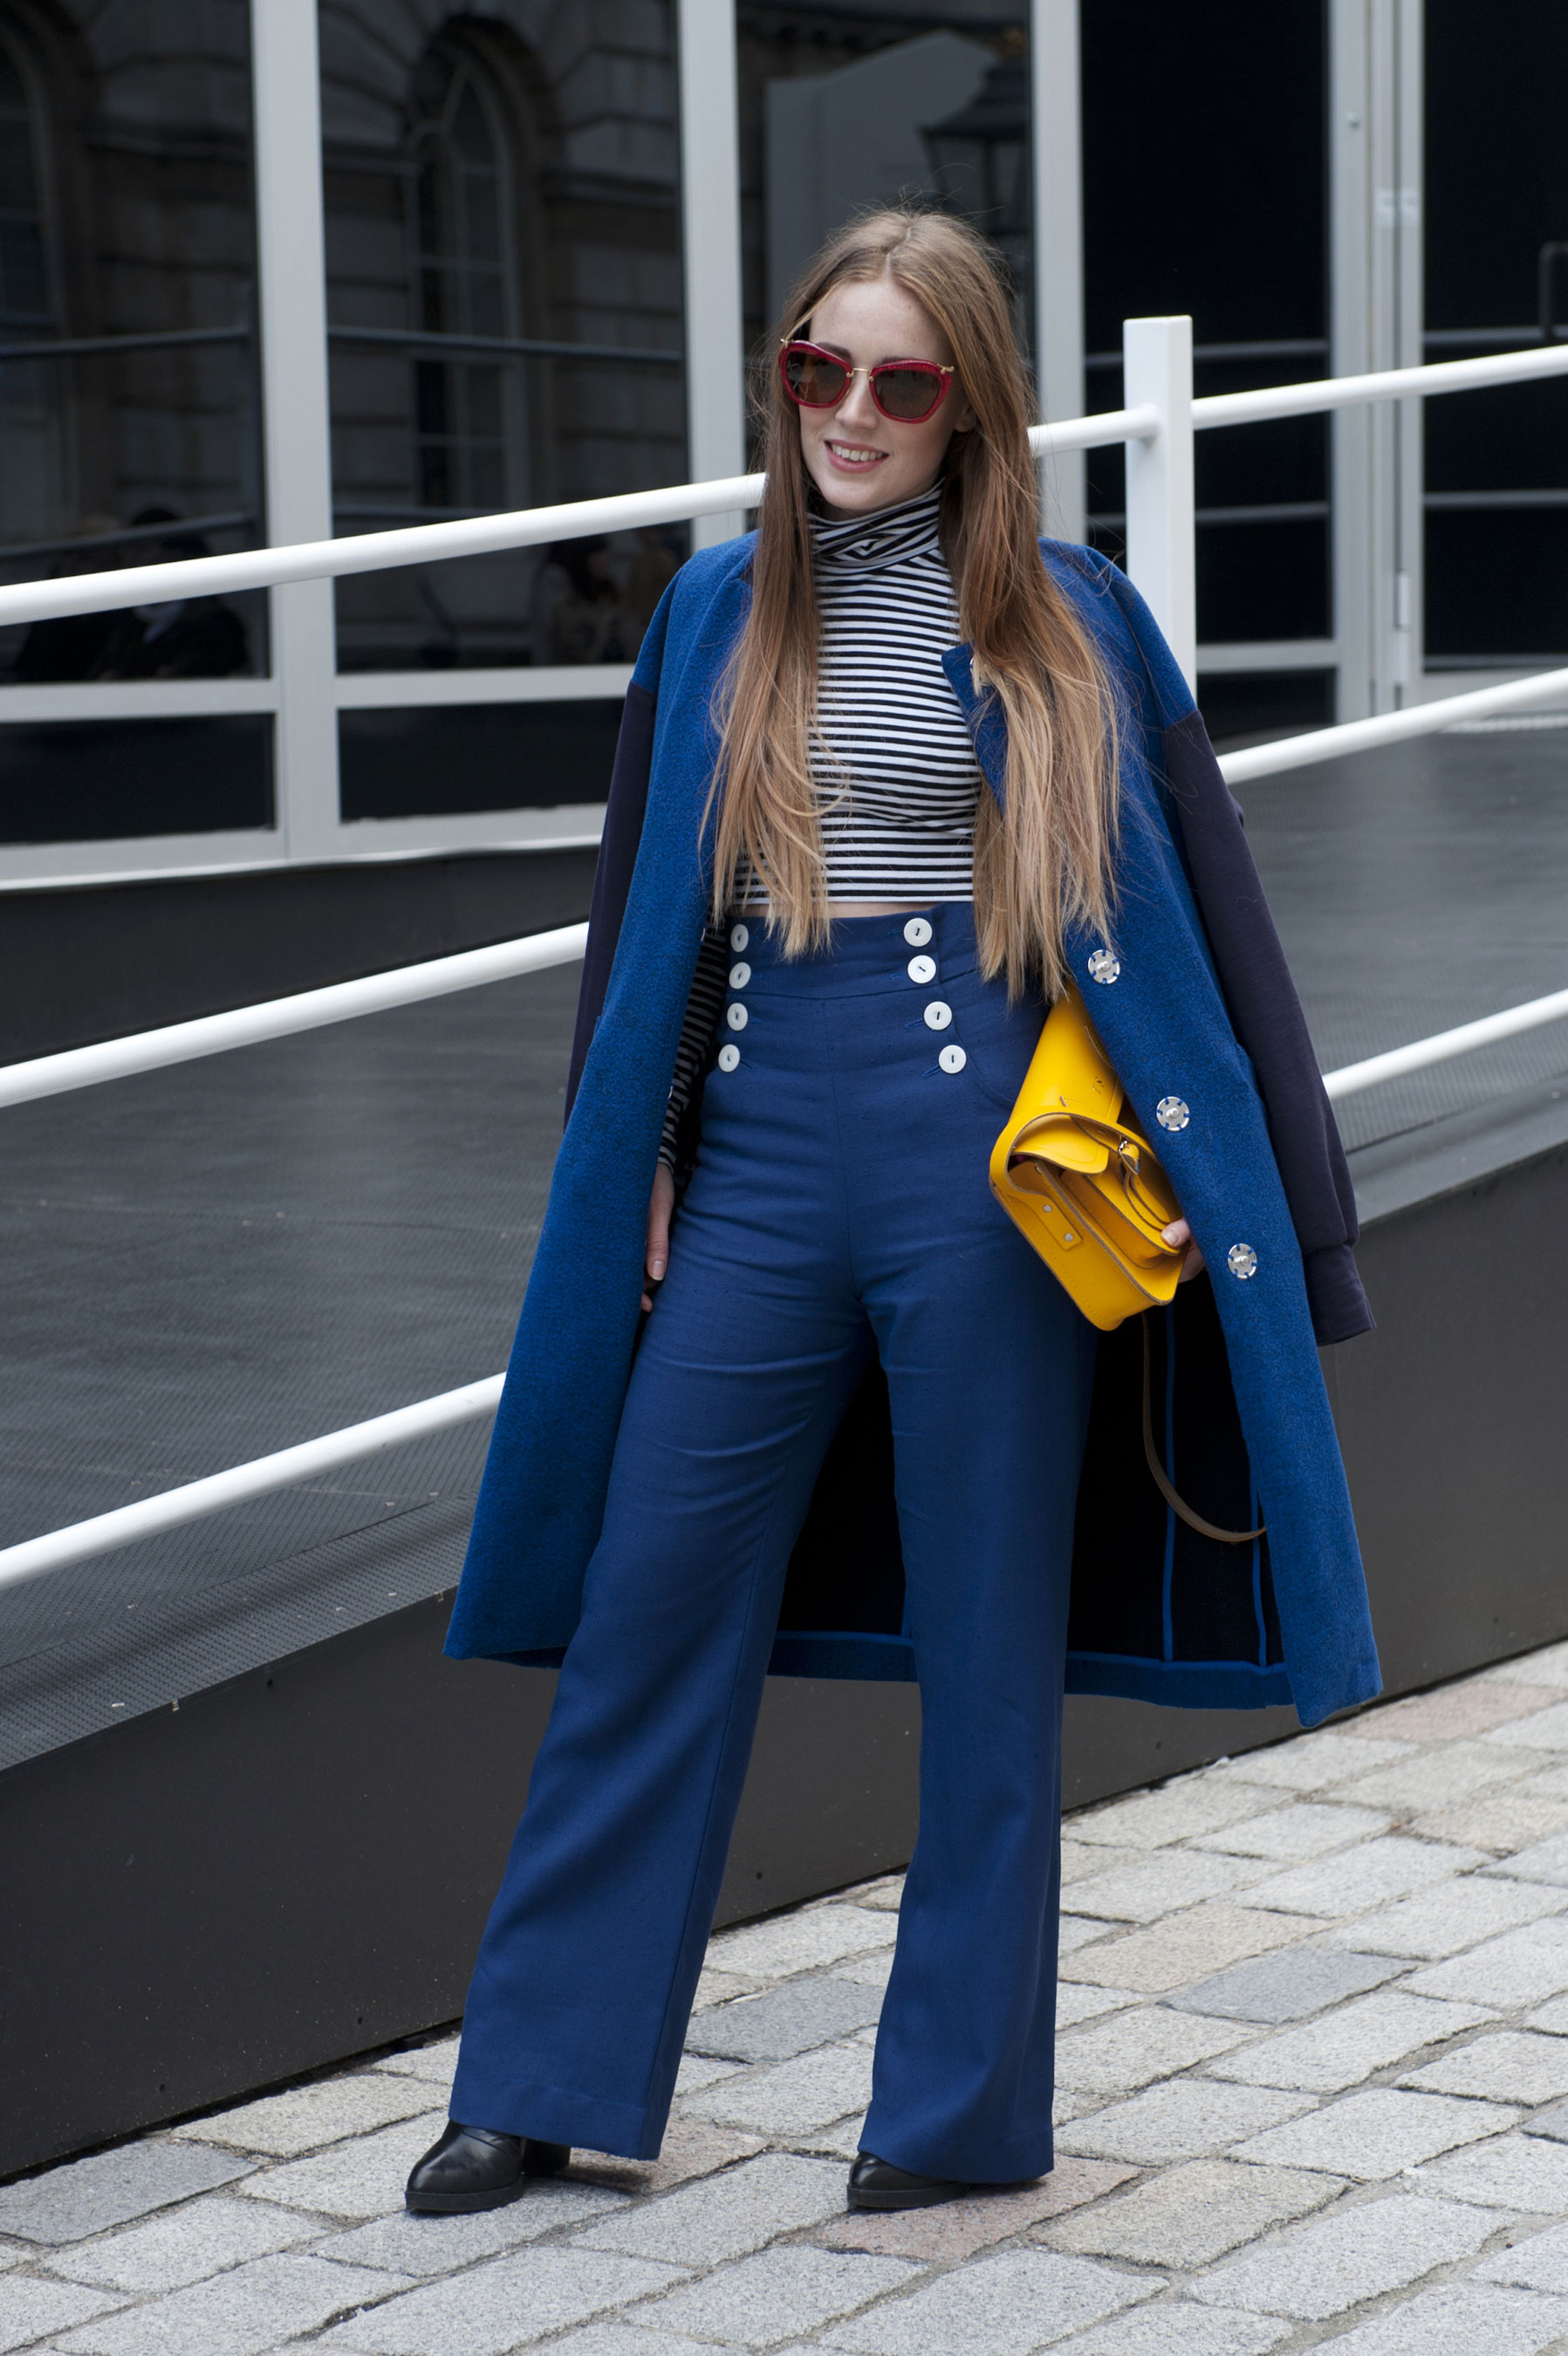 A Nautical Inspired Bit Of Street Style Thanks To High